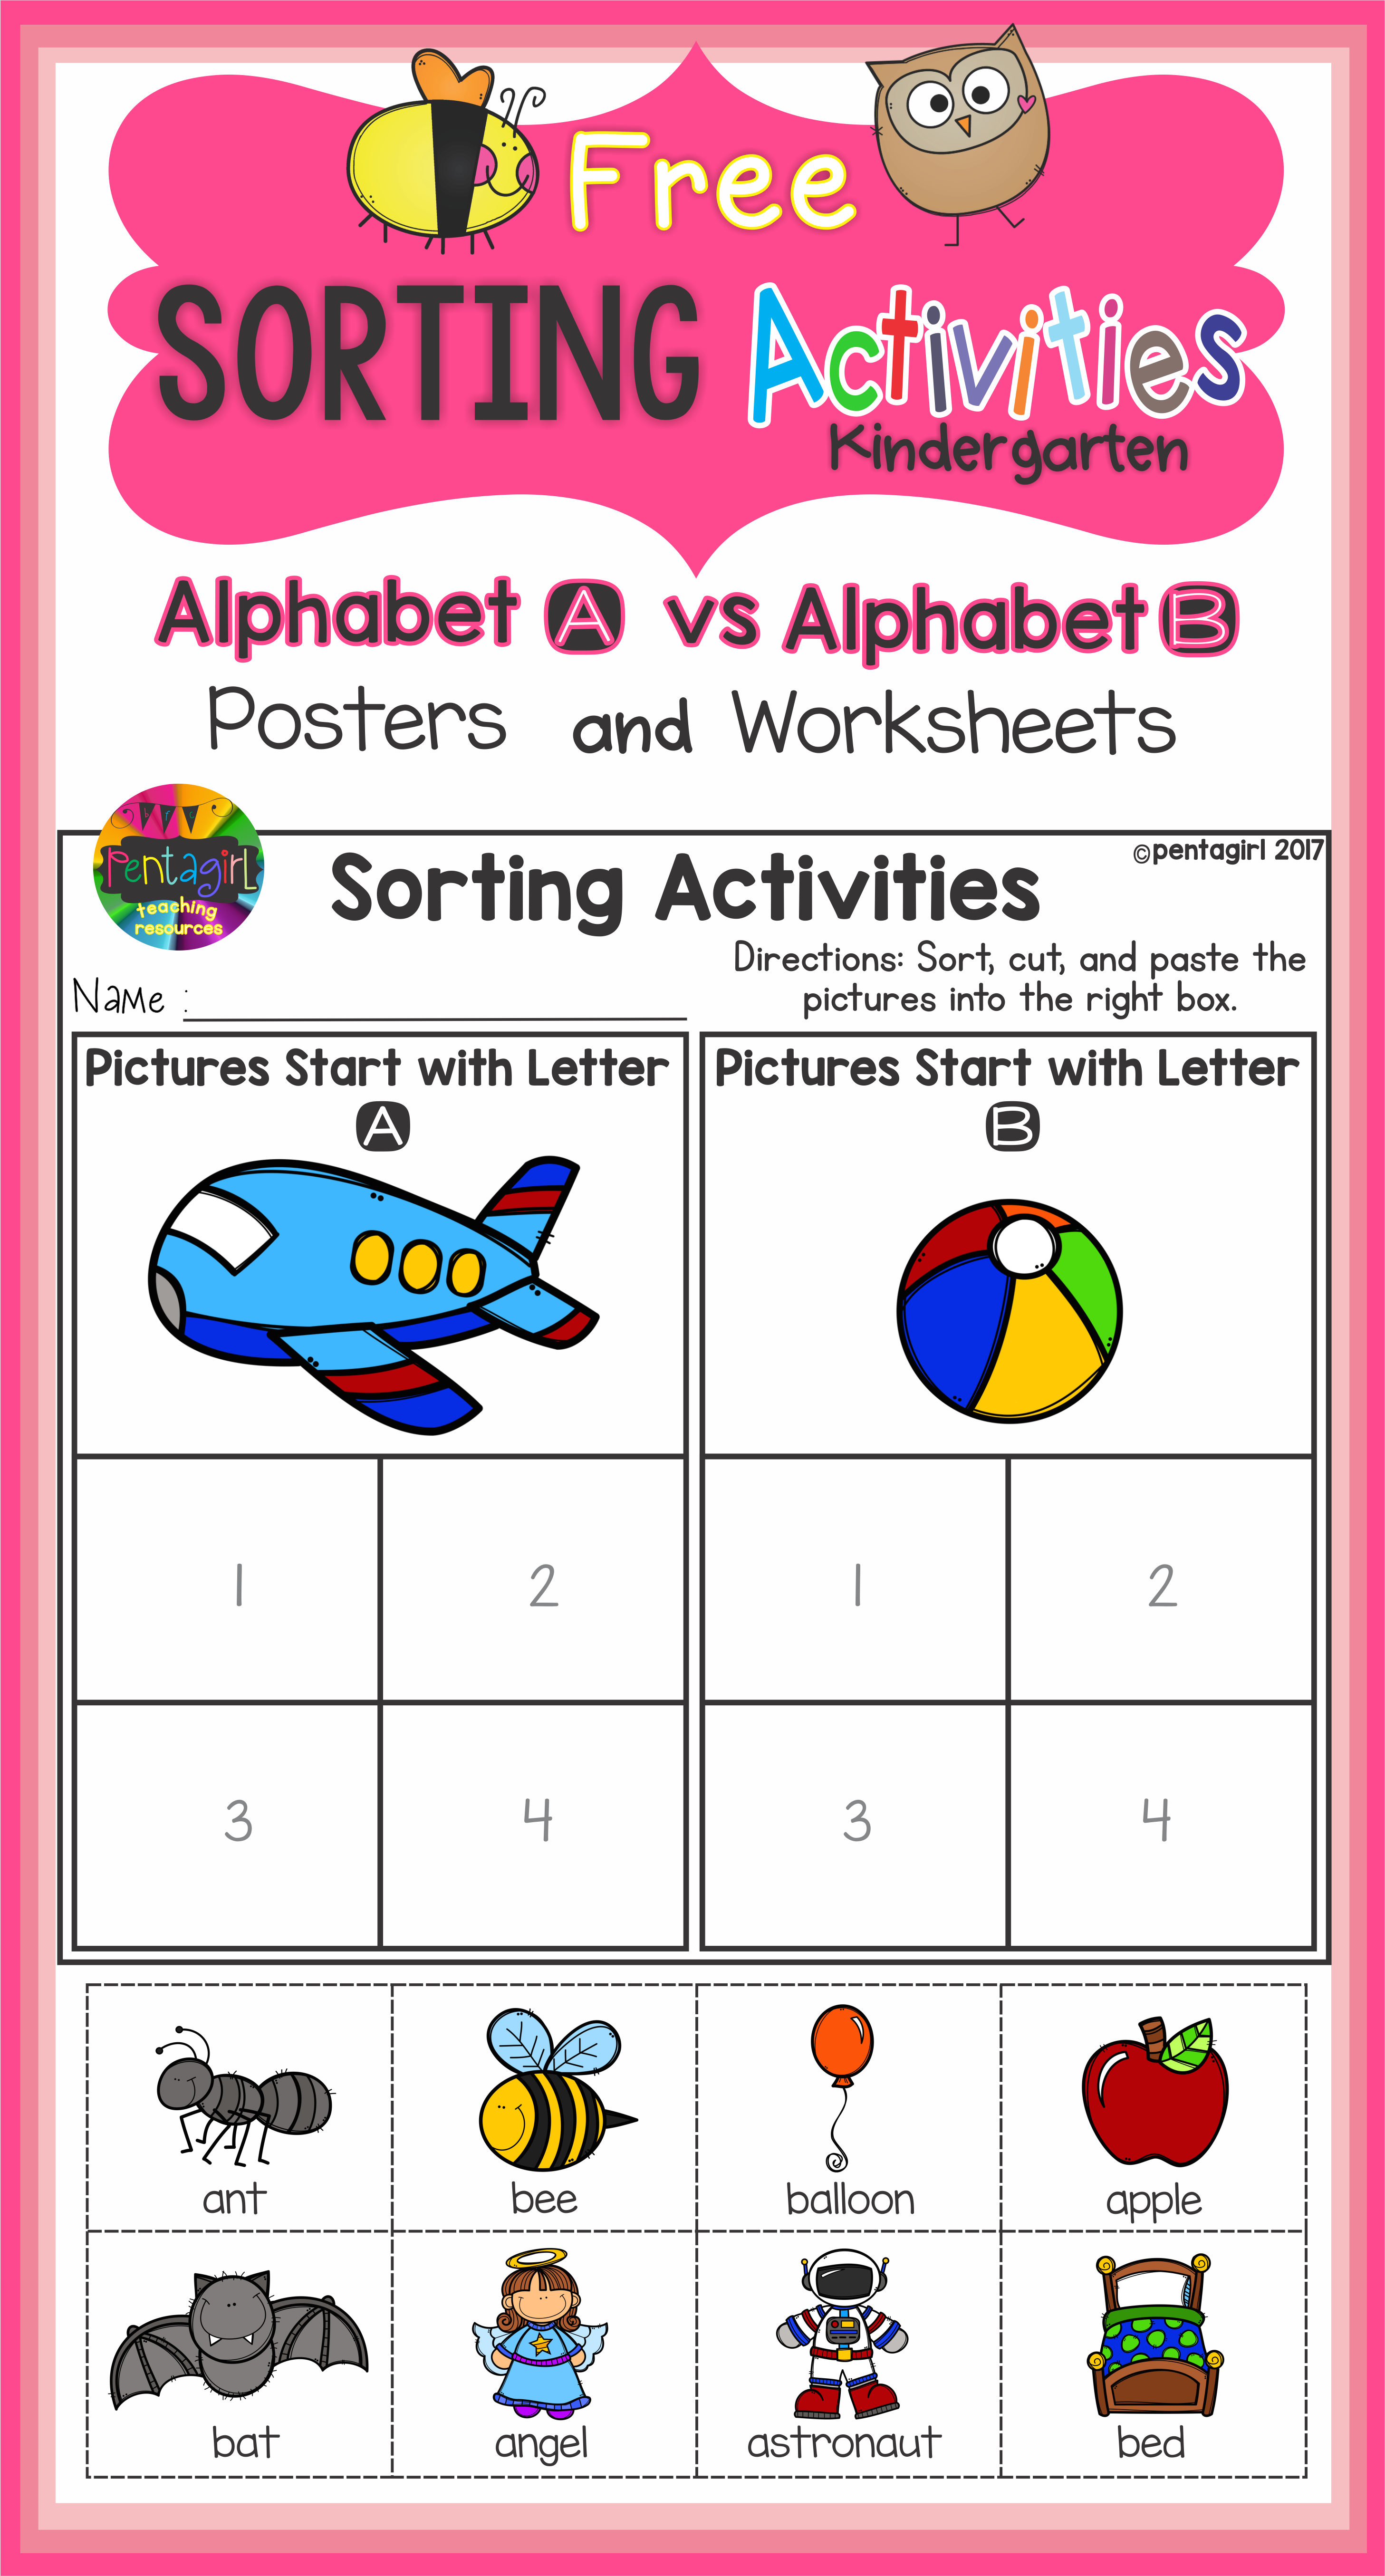 Free Sorting Activities Posters And Worksheets Alphabet A